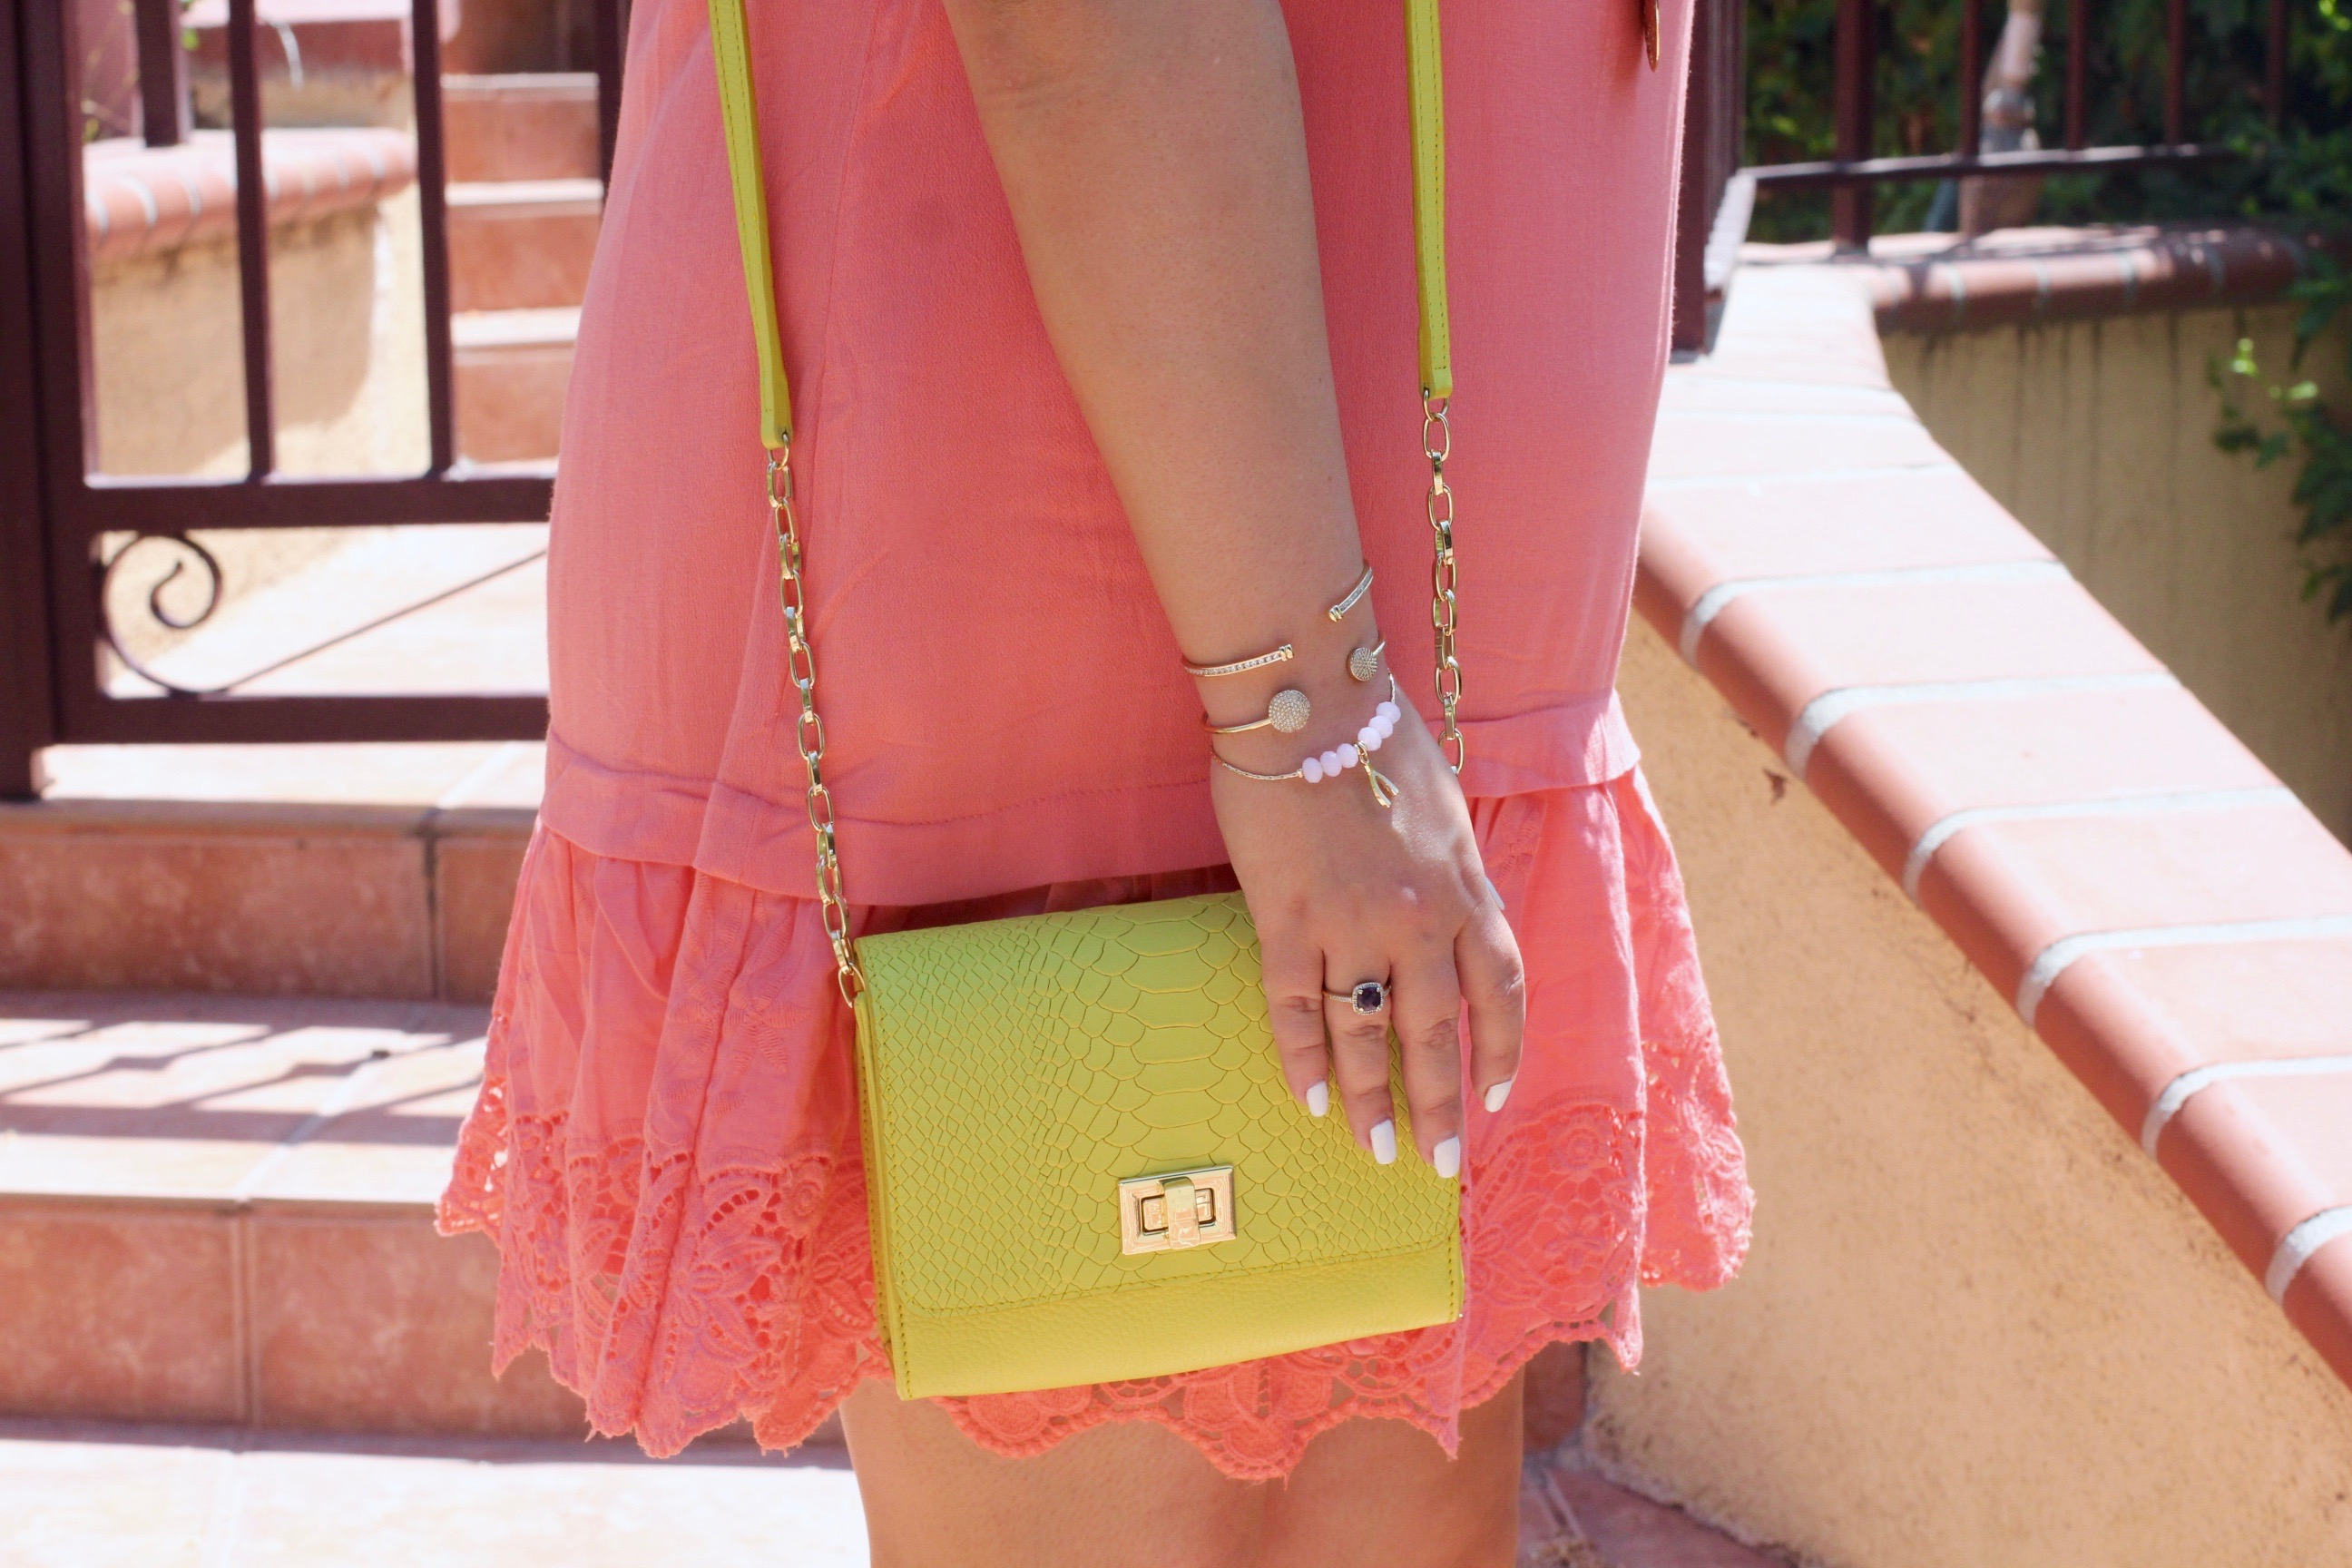 missyonmadison, melissa tierney, coral dress, coral off the shoulder dress, fashion blogger, la blogger, coral heels, coral block heels, gigi ny, yellow gigi ny bag, neon yellow gigi ny bag, ray bans, blue aviators, mirrored aviators, coral dress, hair goals, summer style, la style, how to wear color, pop of color, style blogger,